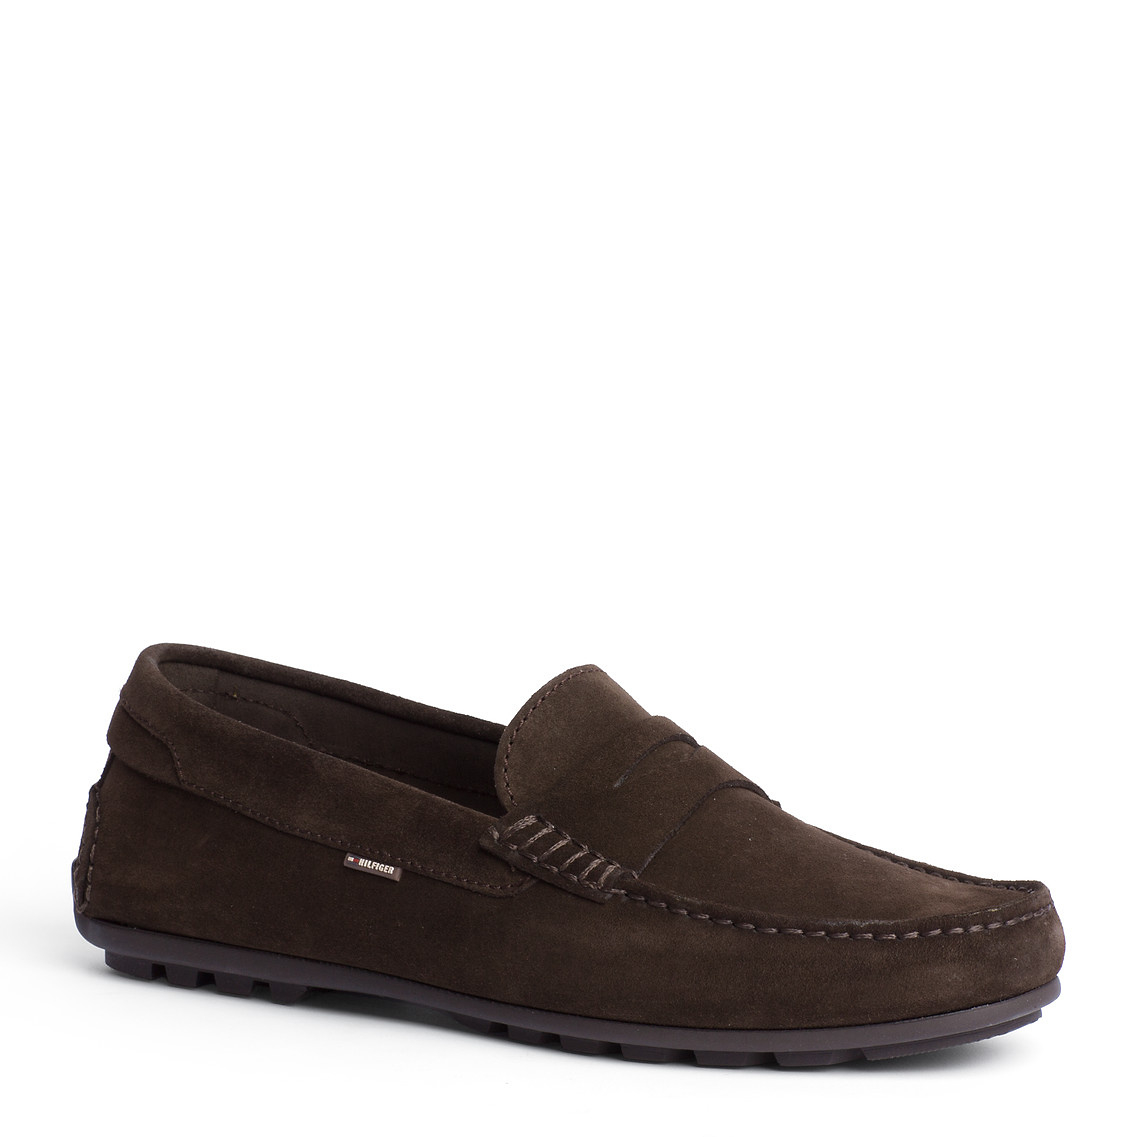 ef83ad76456ca Tommy Hilfiger Alonzo Loafer in Brown for Men - Lyst